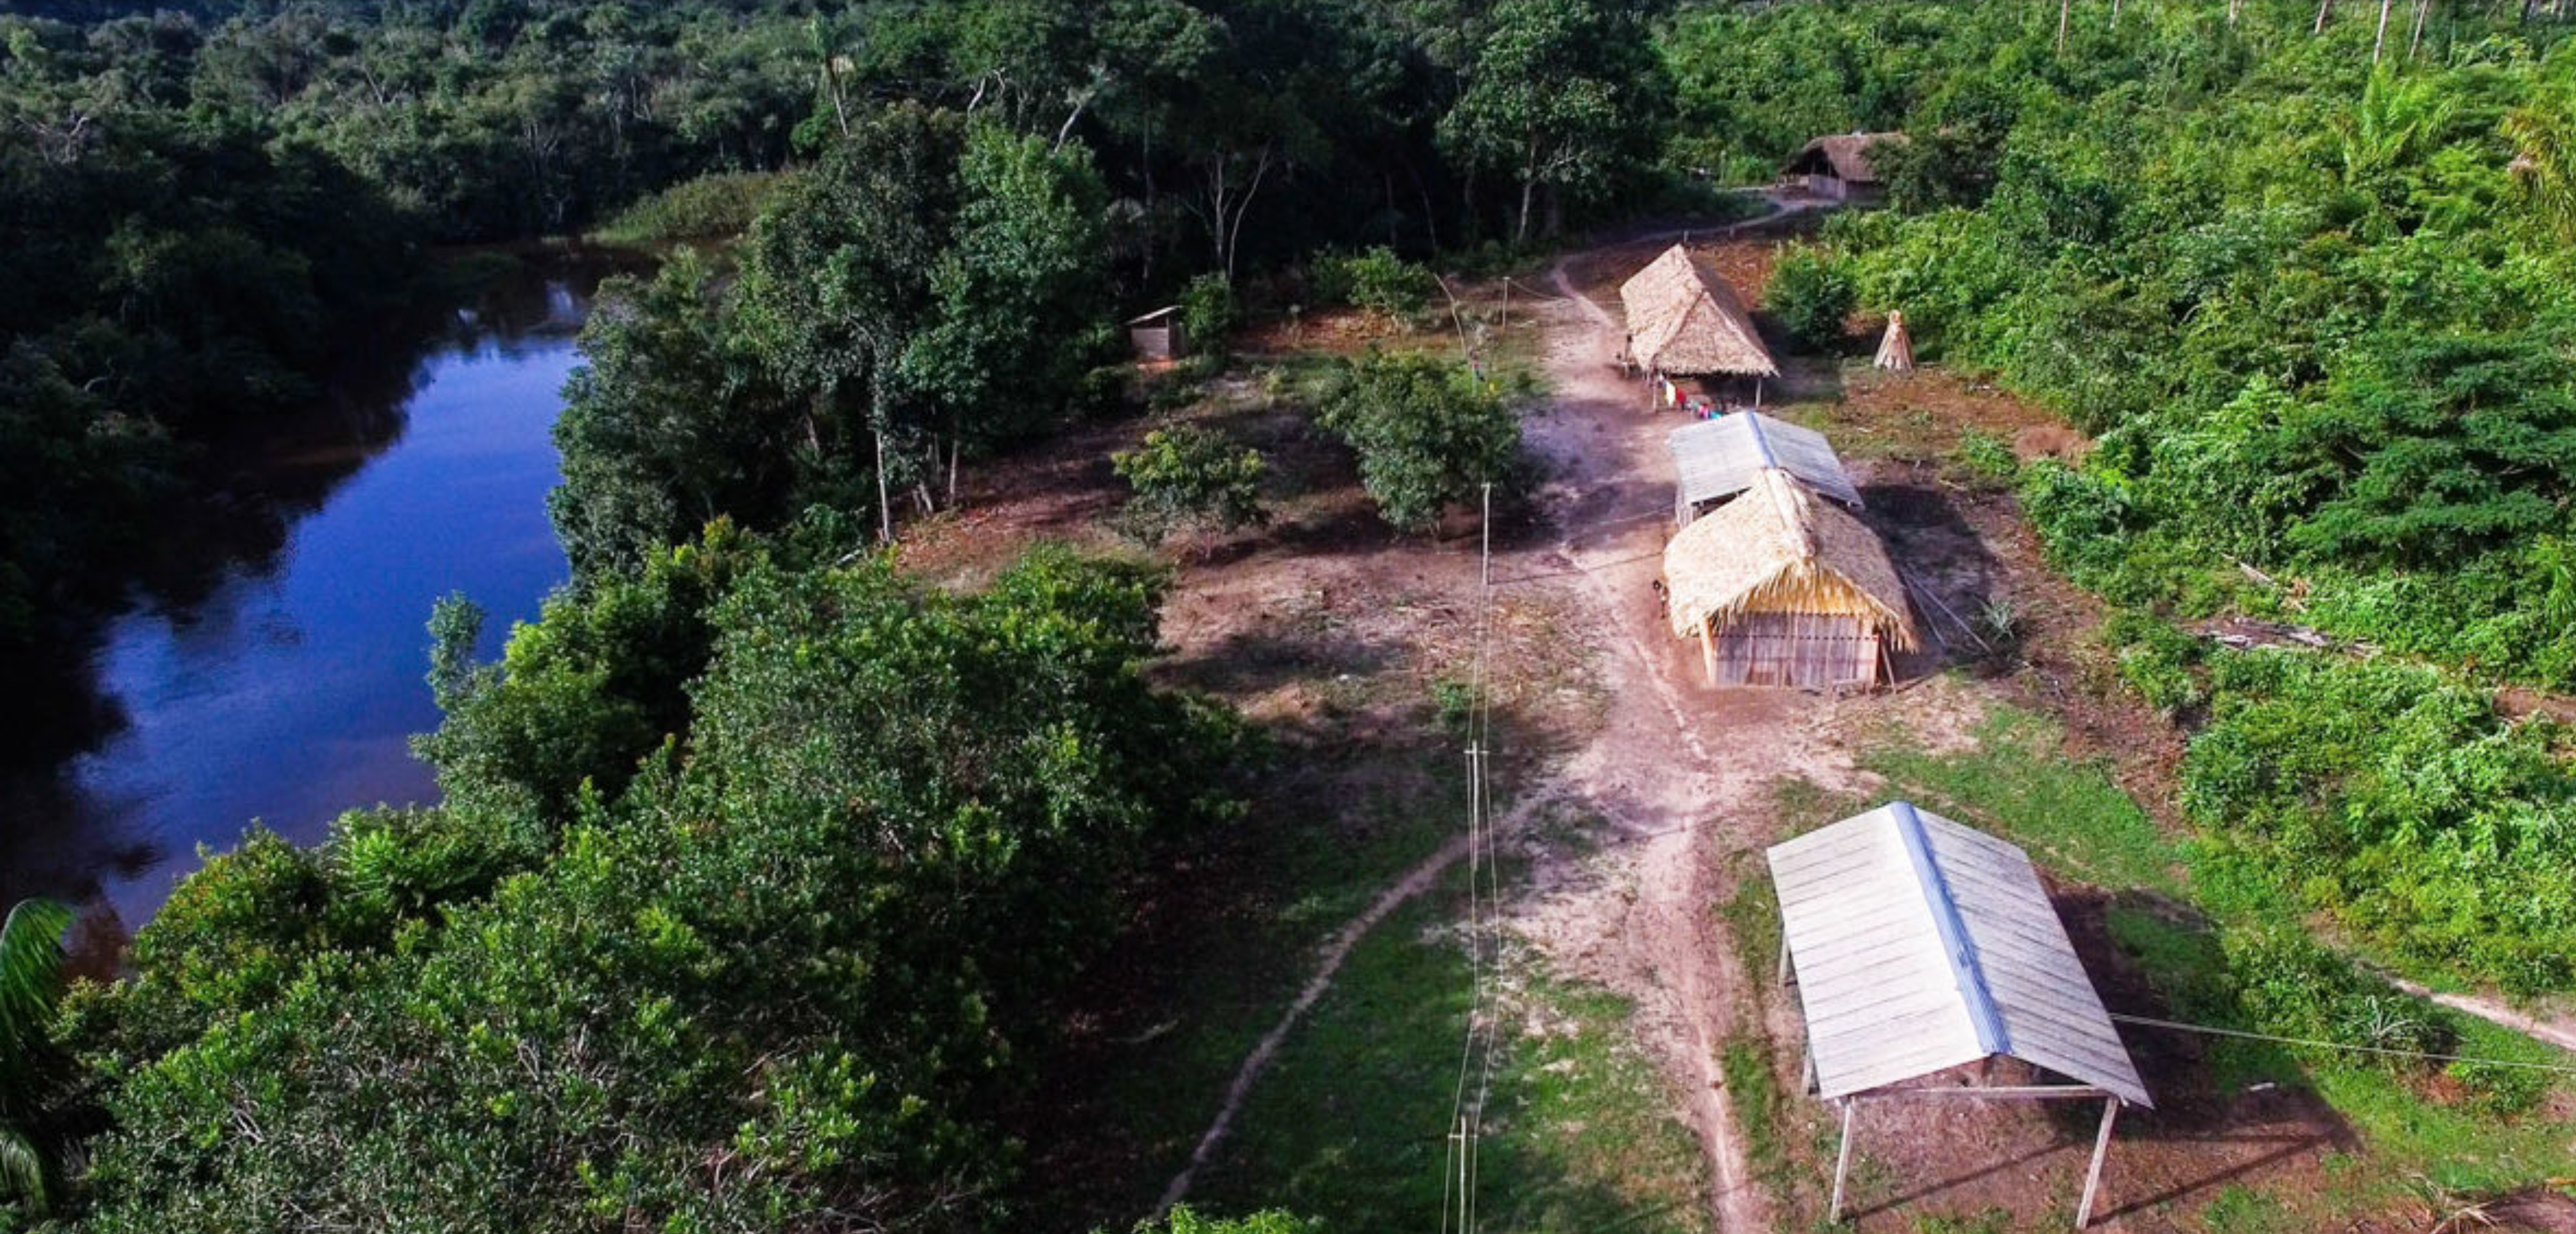 An aerial view of a typical Sateré-Mawé village in the Brazilian Amazon. Image by Matheus Manfredini. Brazil, 2019.